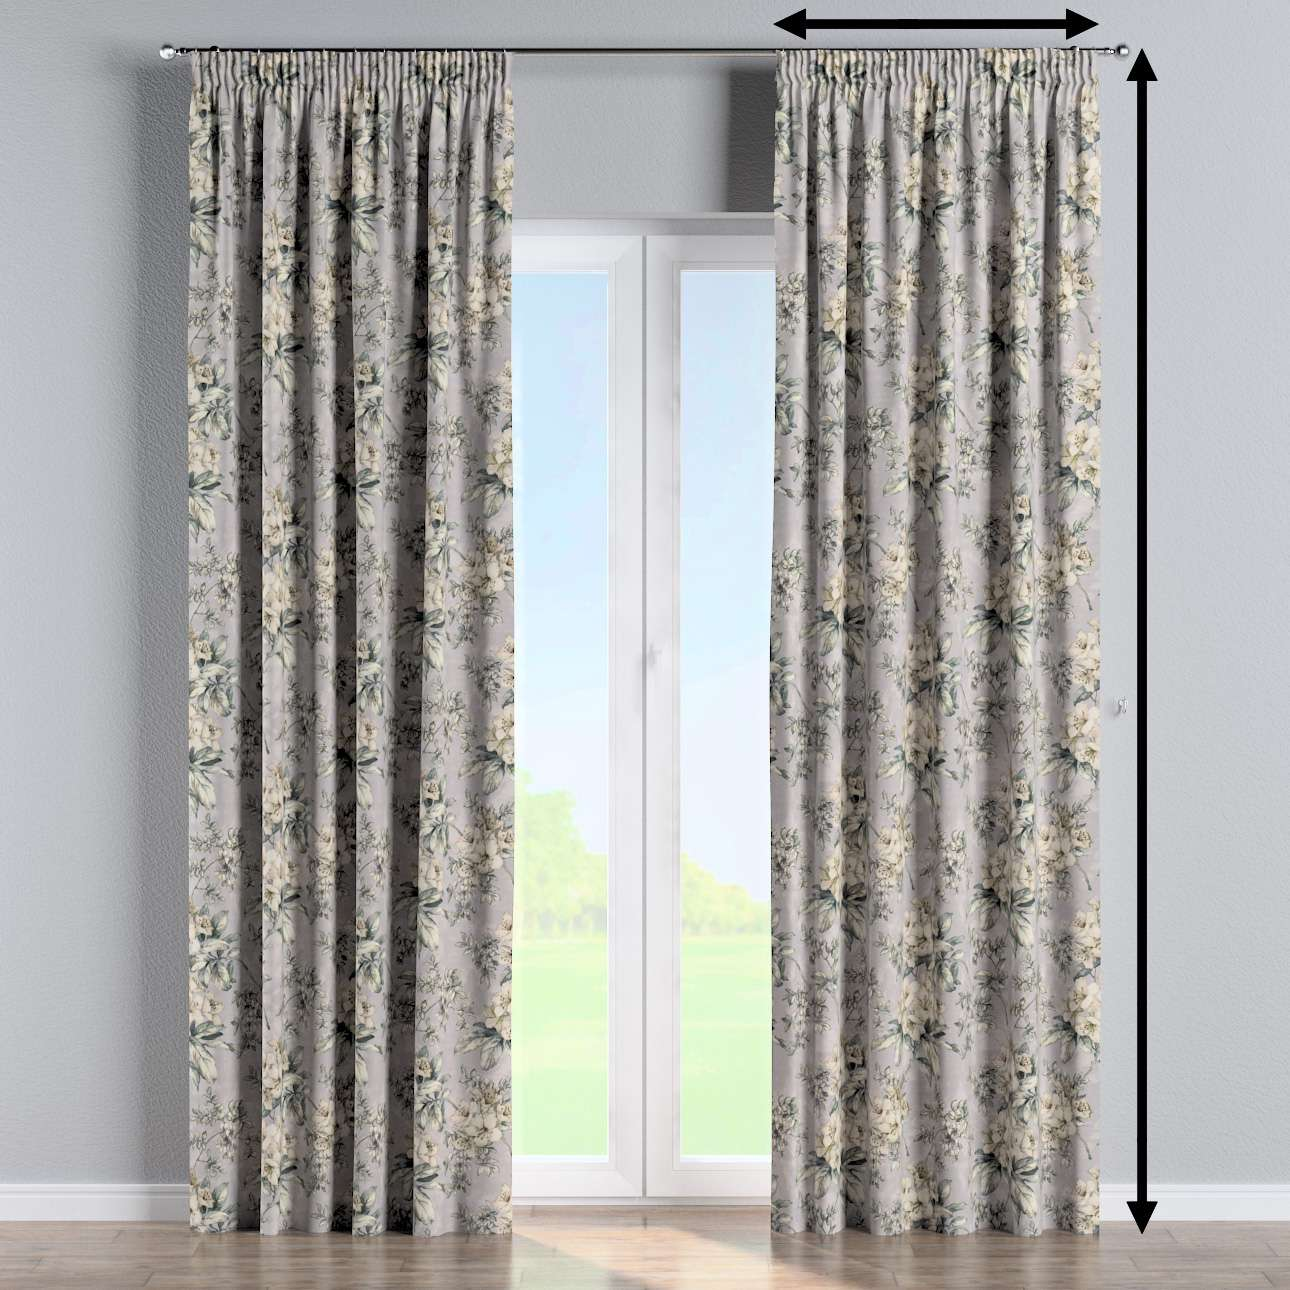 Pencil pleat curtain in collection Londres, fabric: 143-36